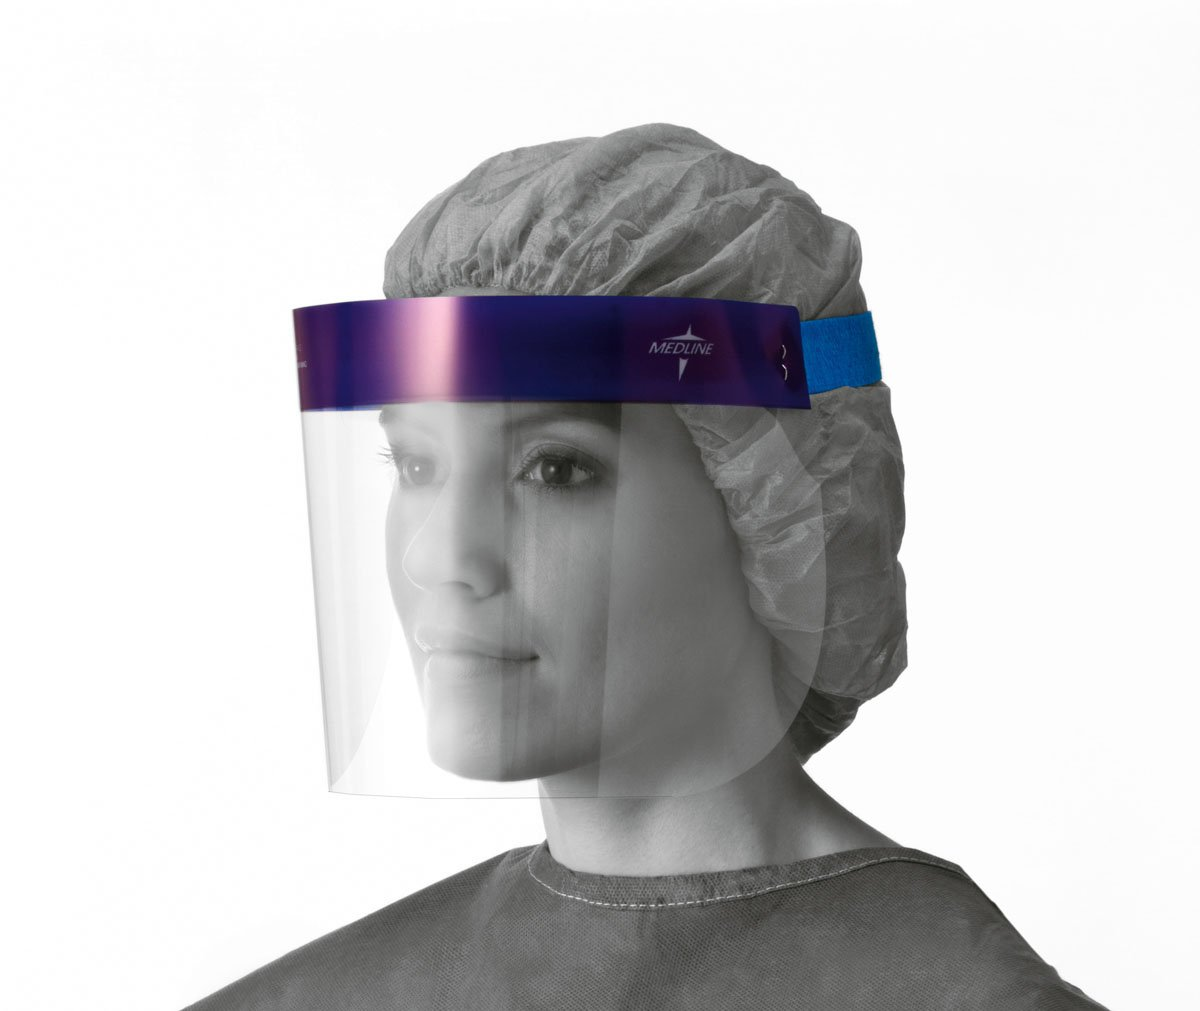 Medline NONFS400 Face Shields with Foam Top, Disposable, Latex Free, 3/4'' Length (Pack of 96)